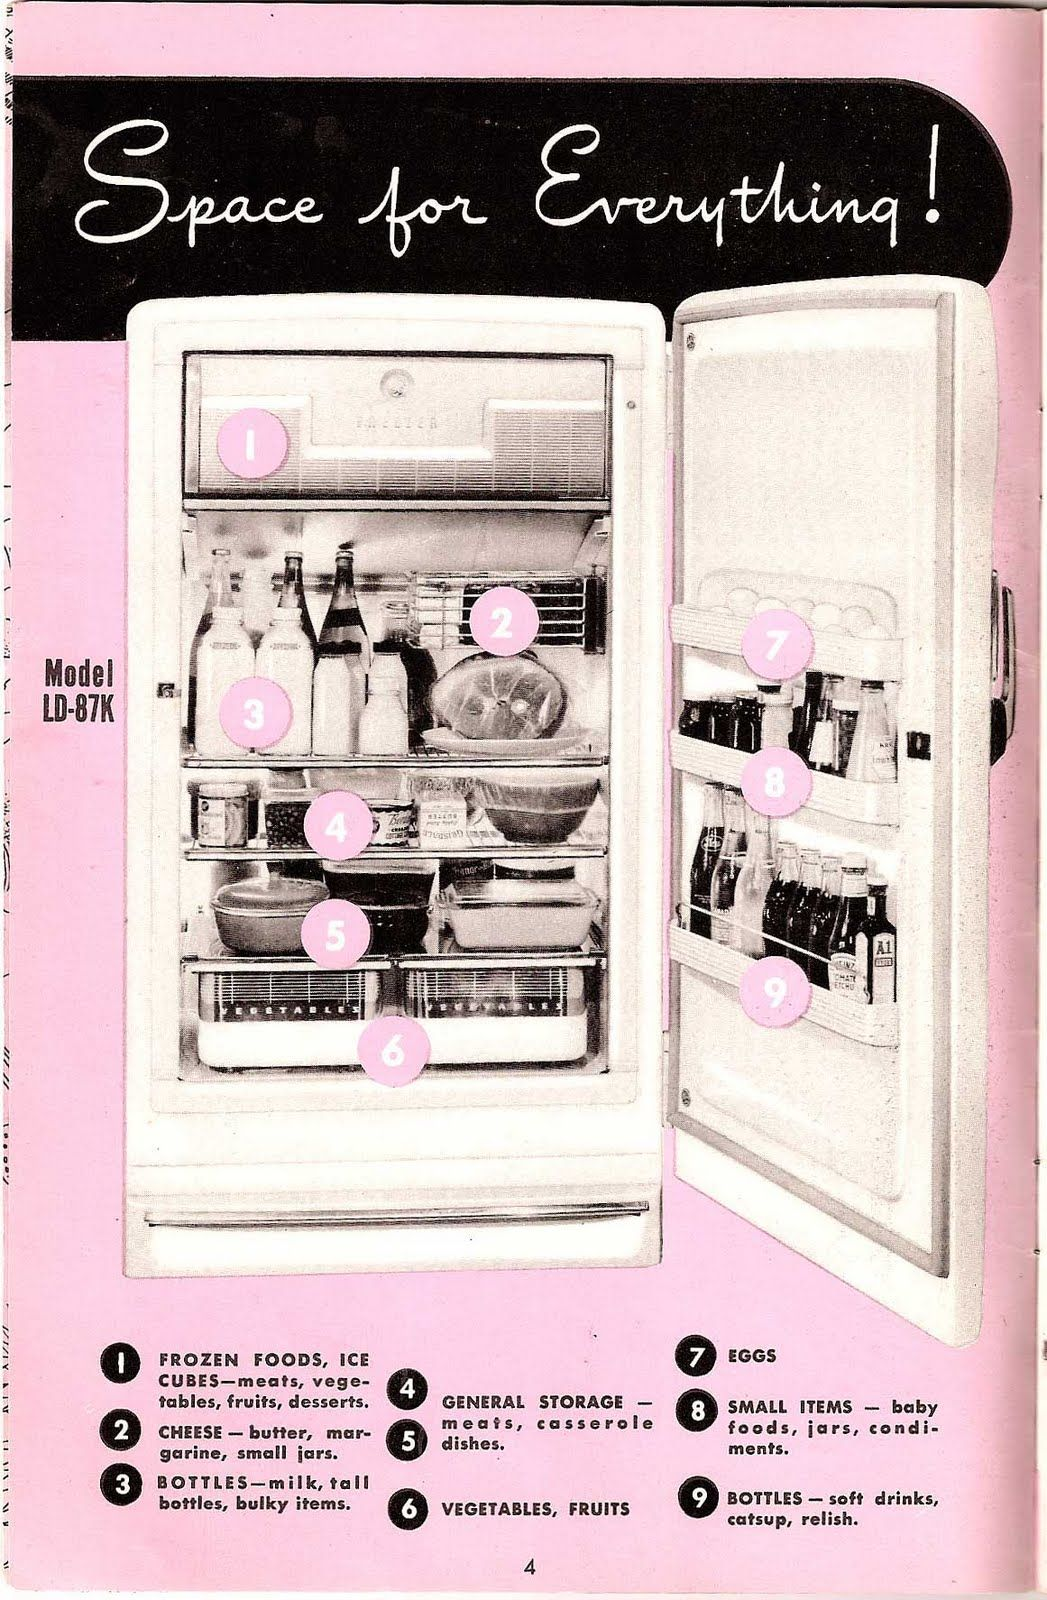 general electric refrigerator page from the owner s manual to my rh pinterest com general electric refrigerator manual general electric company refrigerator manual